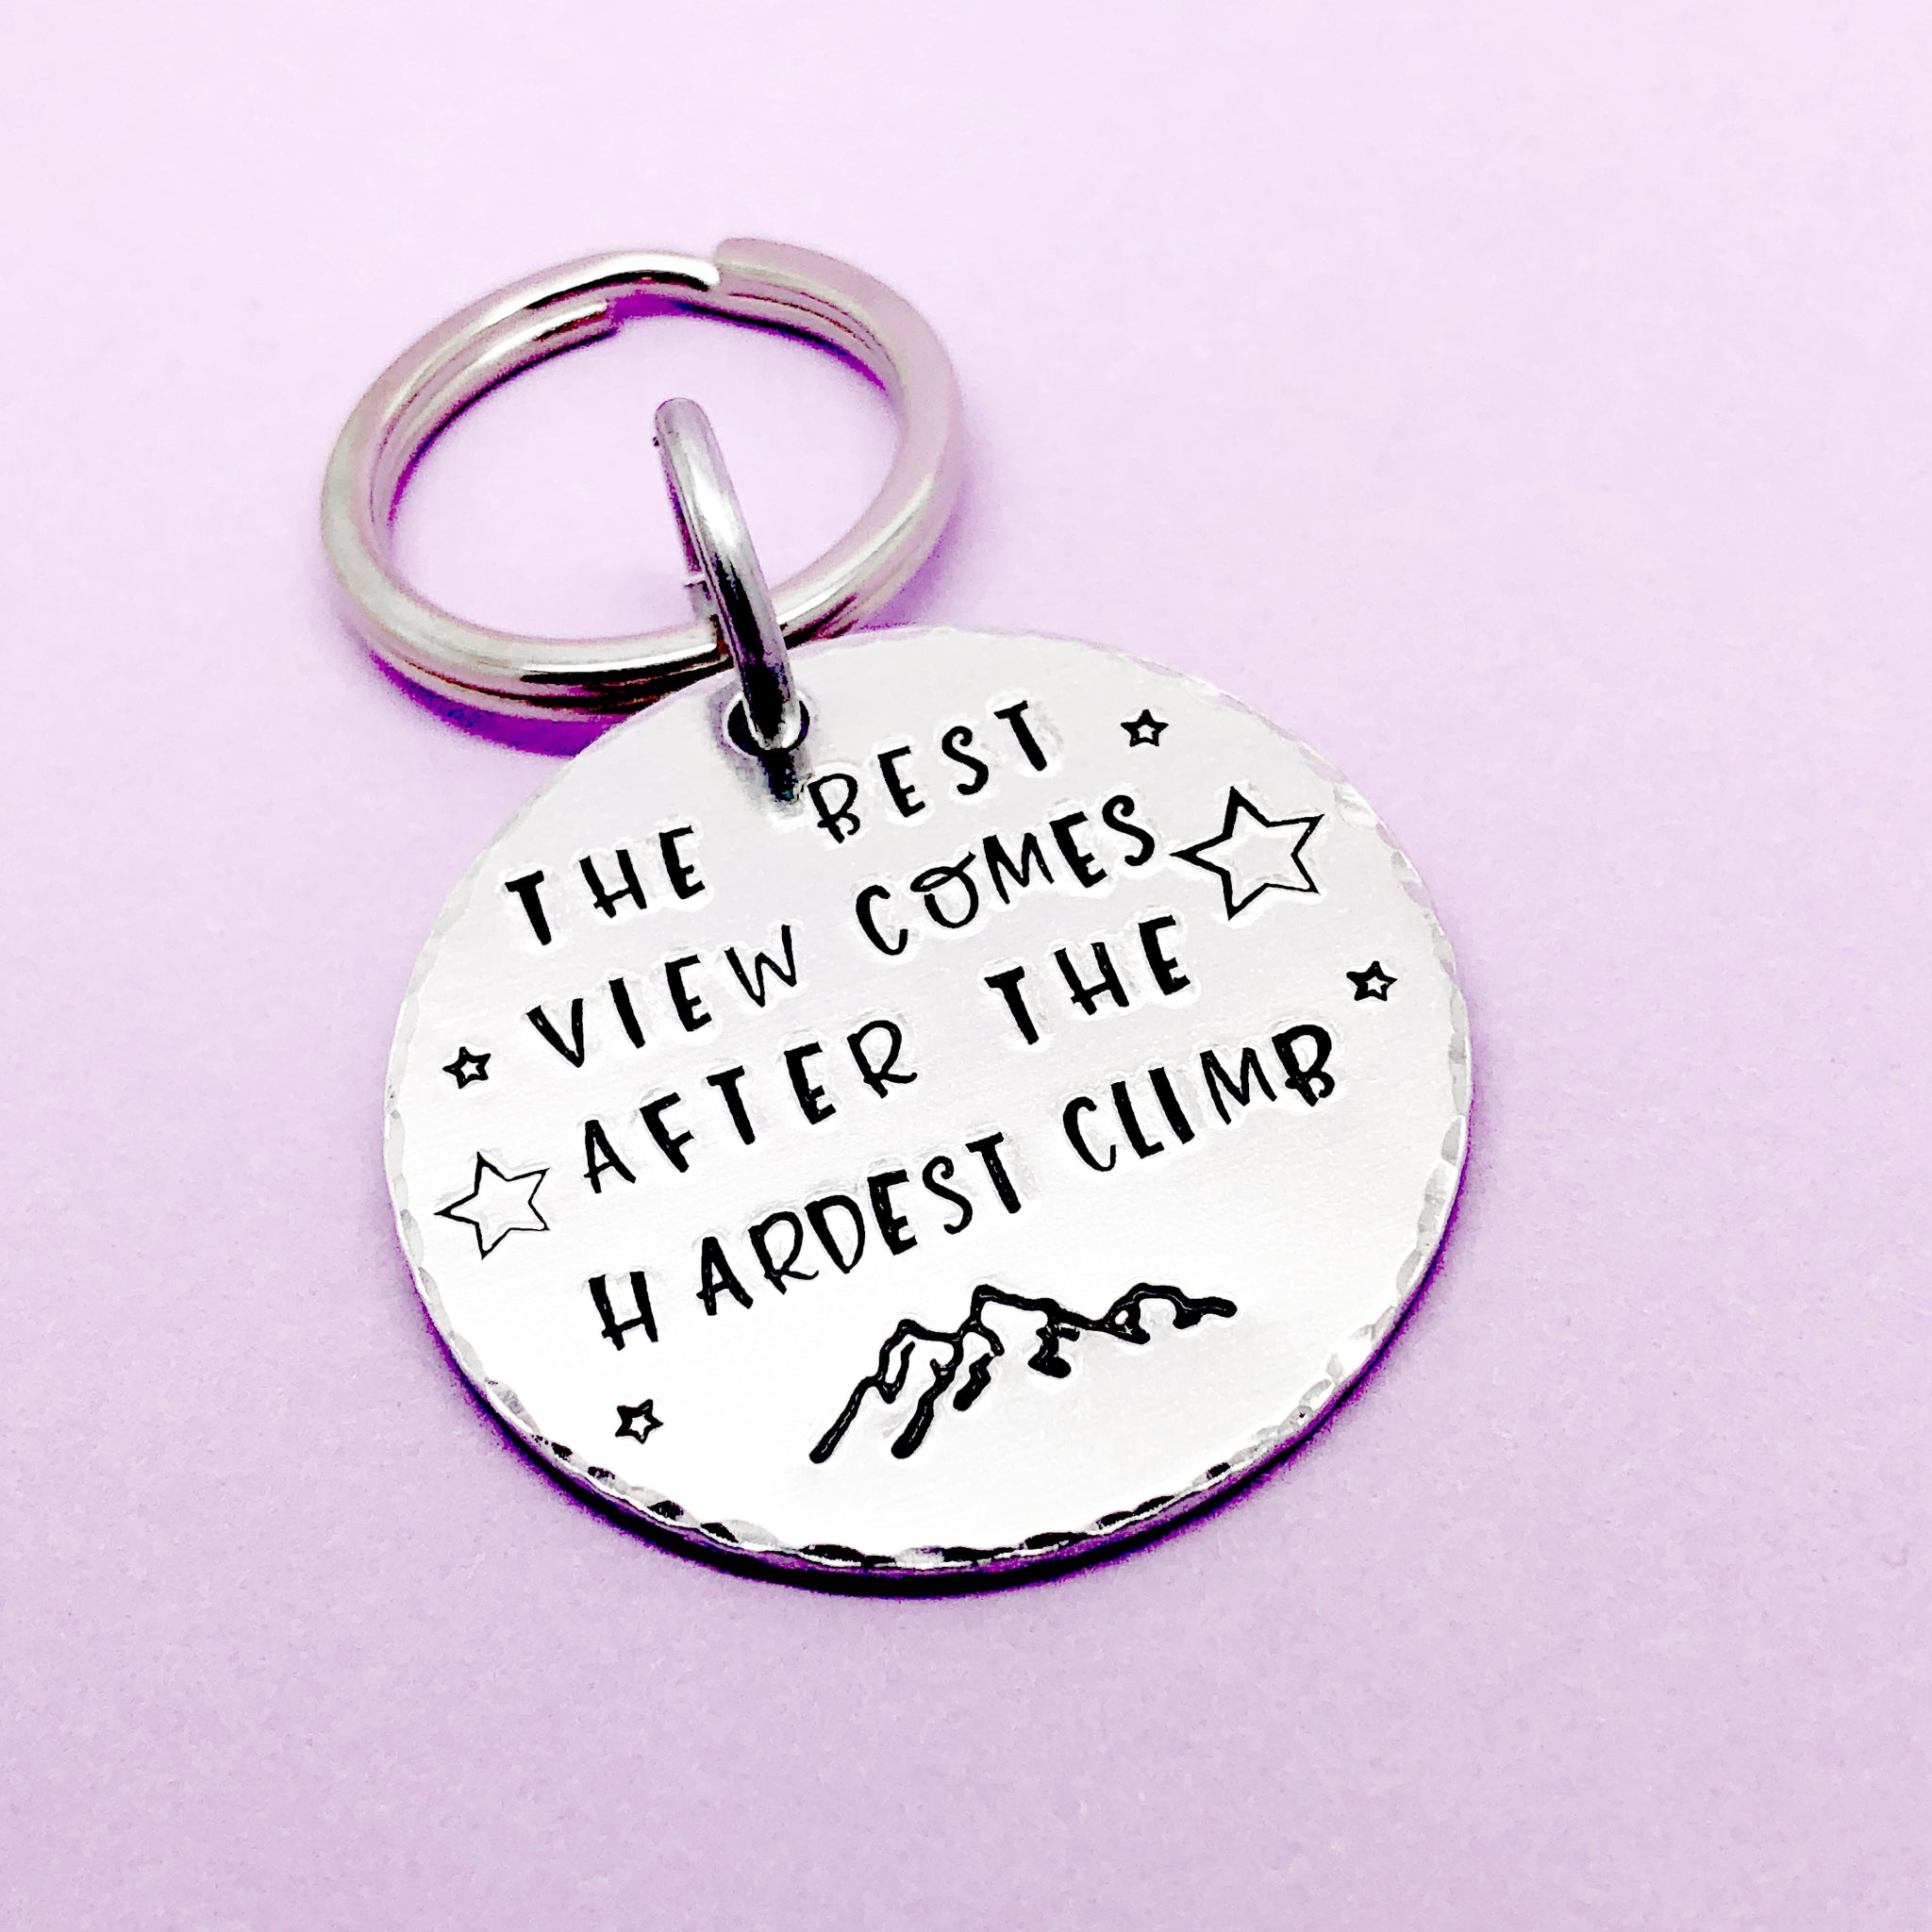 motivational Keyring, Quote keyring, Hiker Gift, Mountain Keyring, Hiking Gift, Fell Walking, Mountaineering, Mountain Climbing, Dog Walking